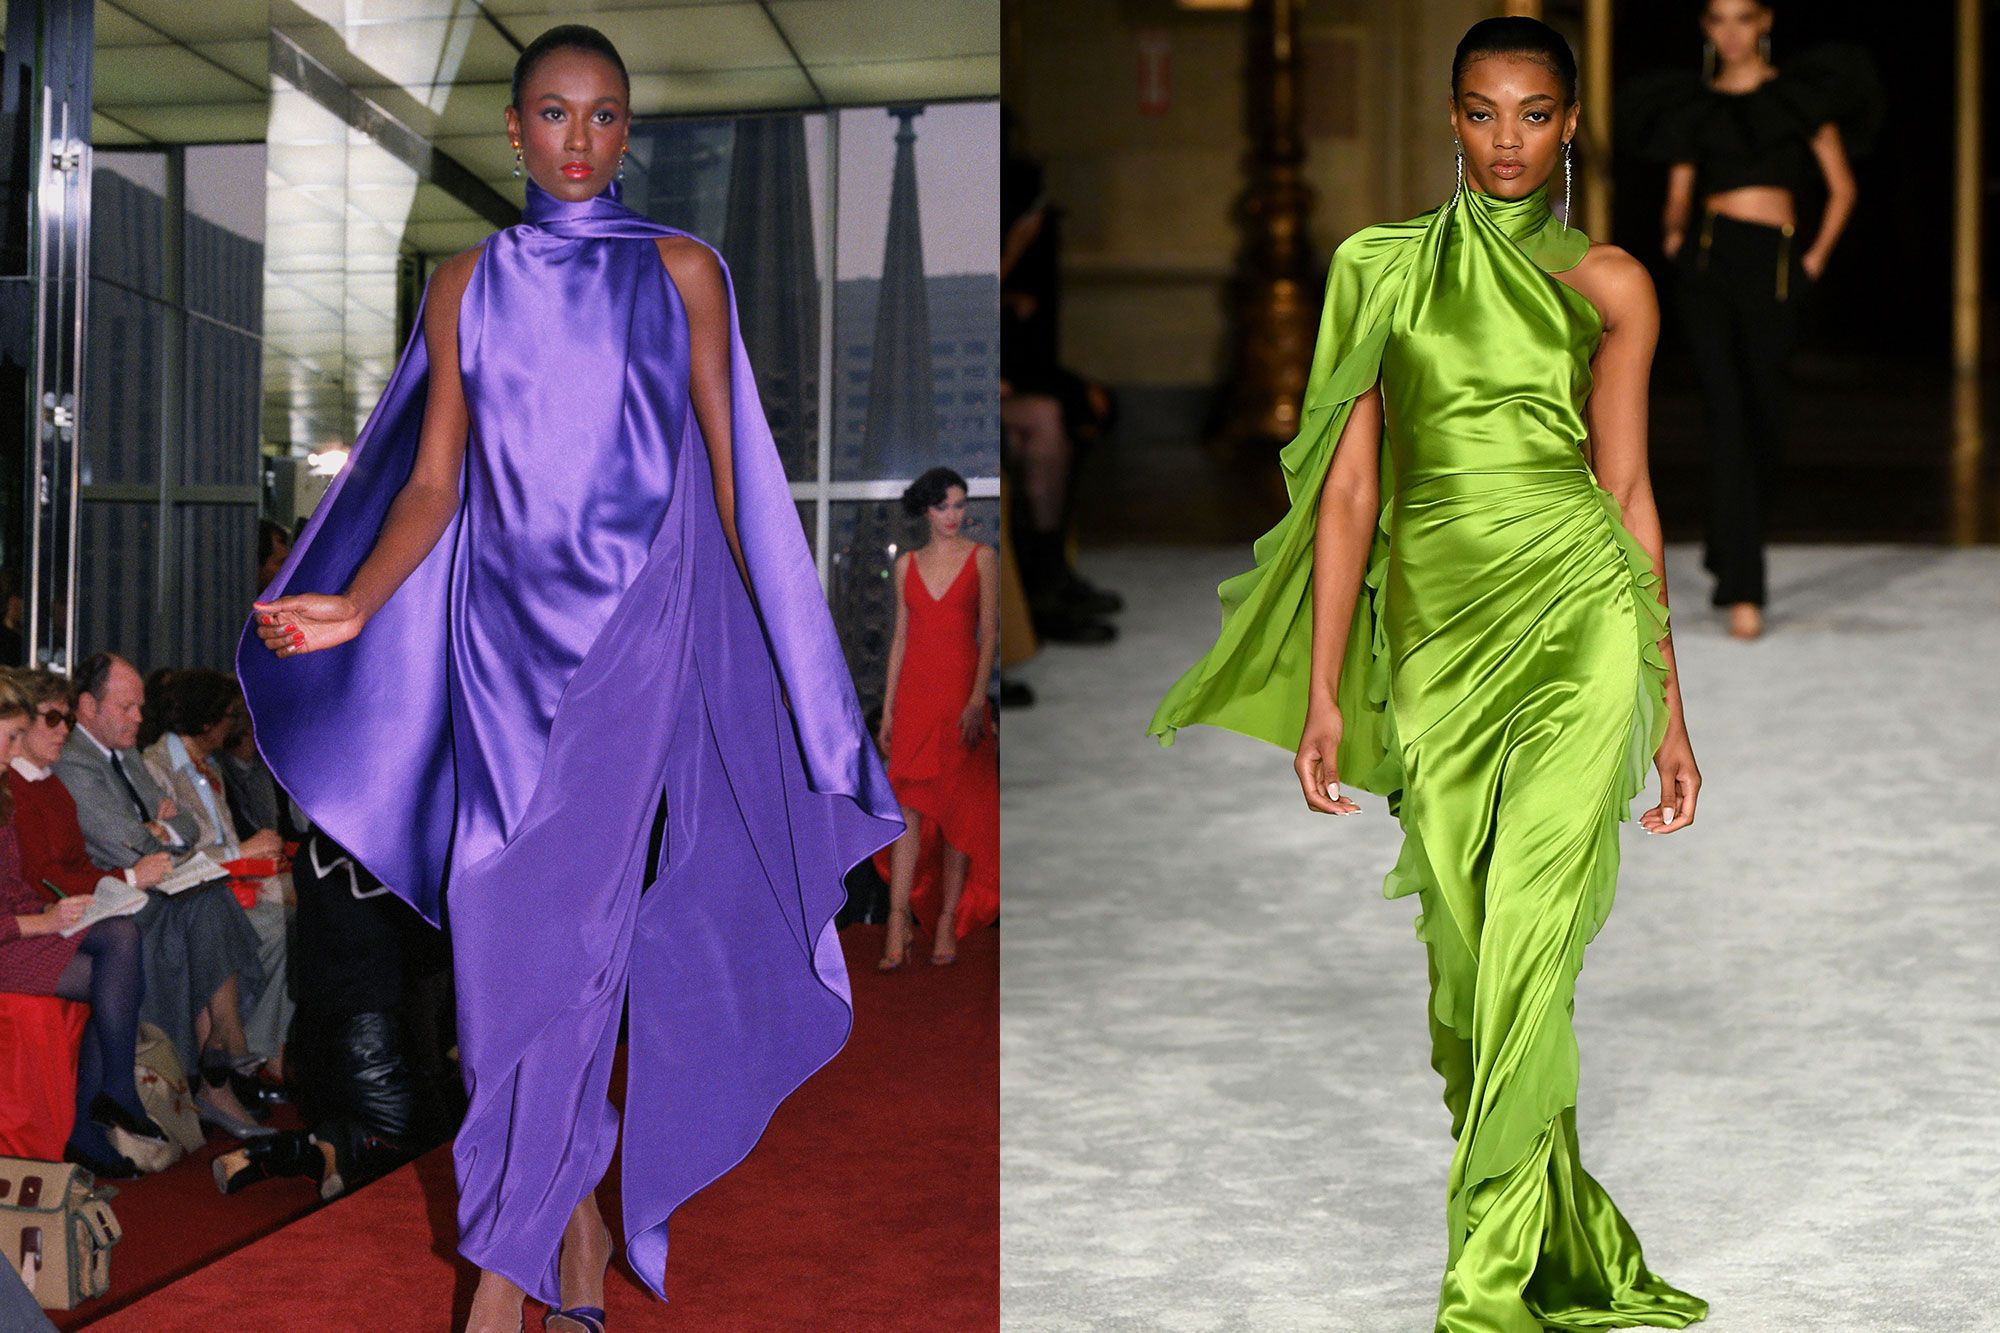 Halston: 7 Times The Designer's Influence Was Seen On The Fall-Winter 2021 Runways